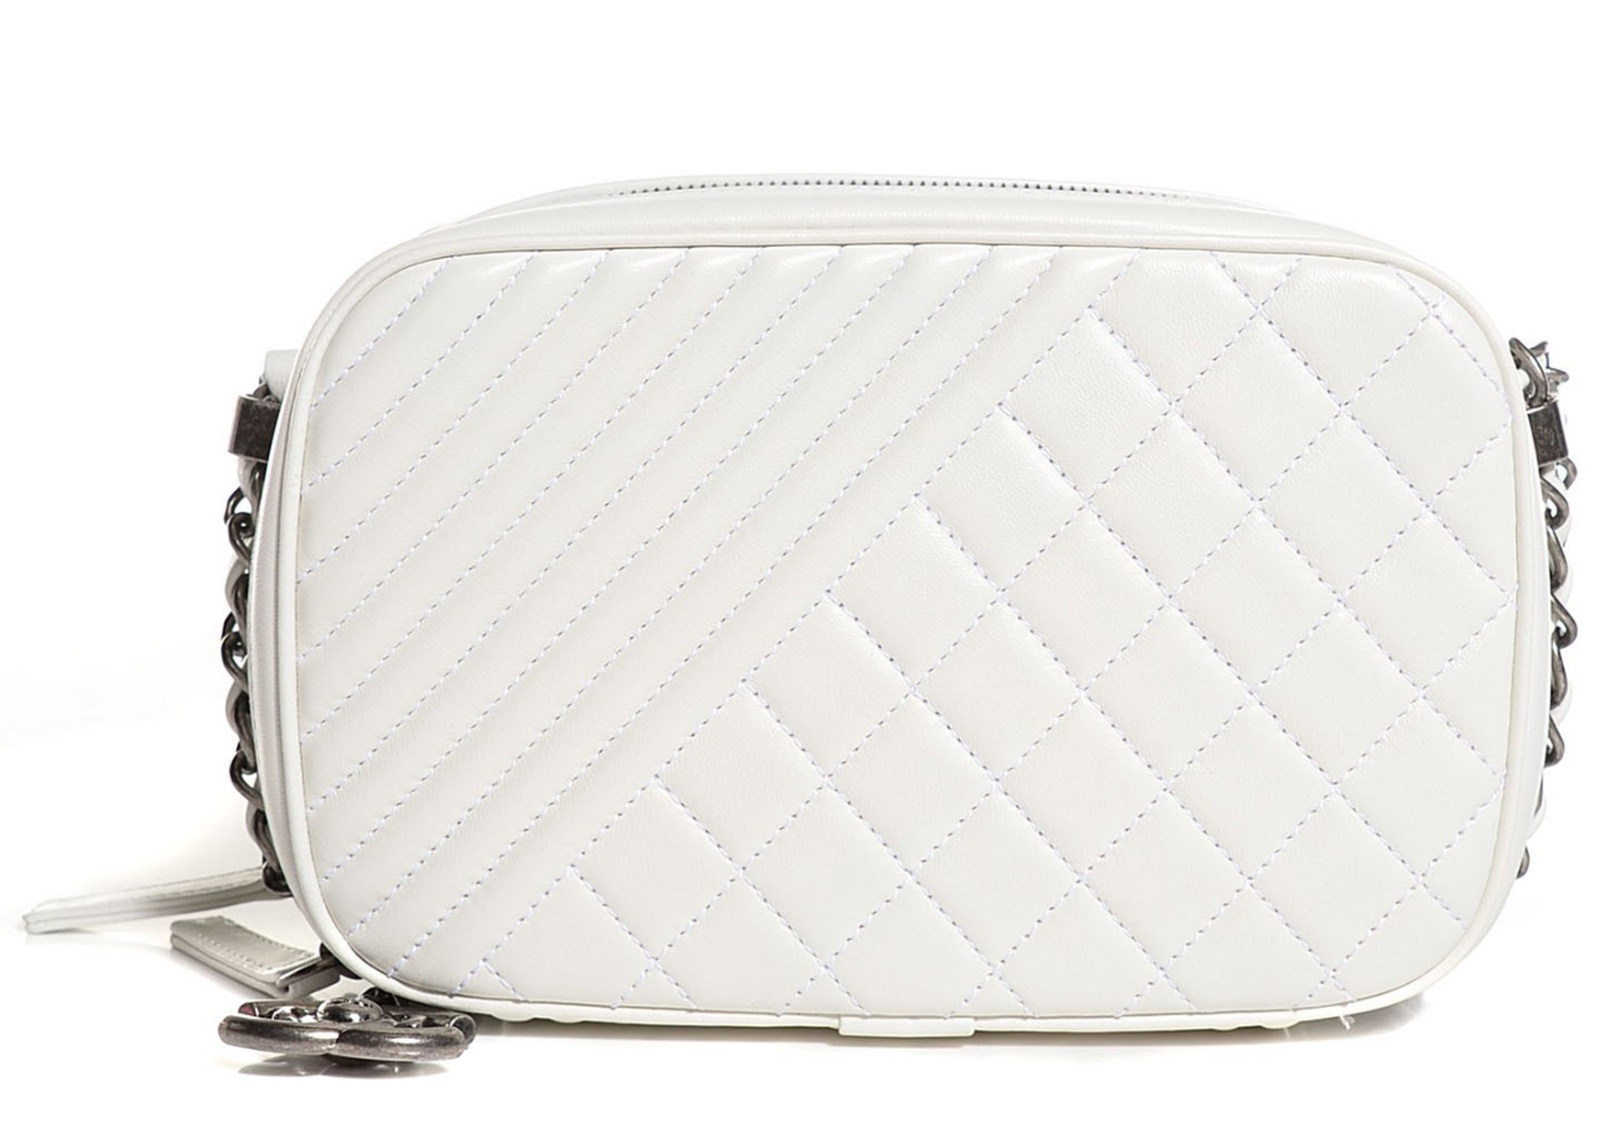 Authentic CHANEL Lambskin Quilted Small Coco Boy Camera Case Bag White